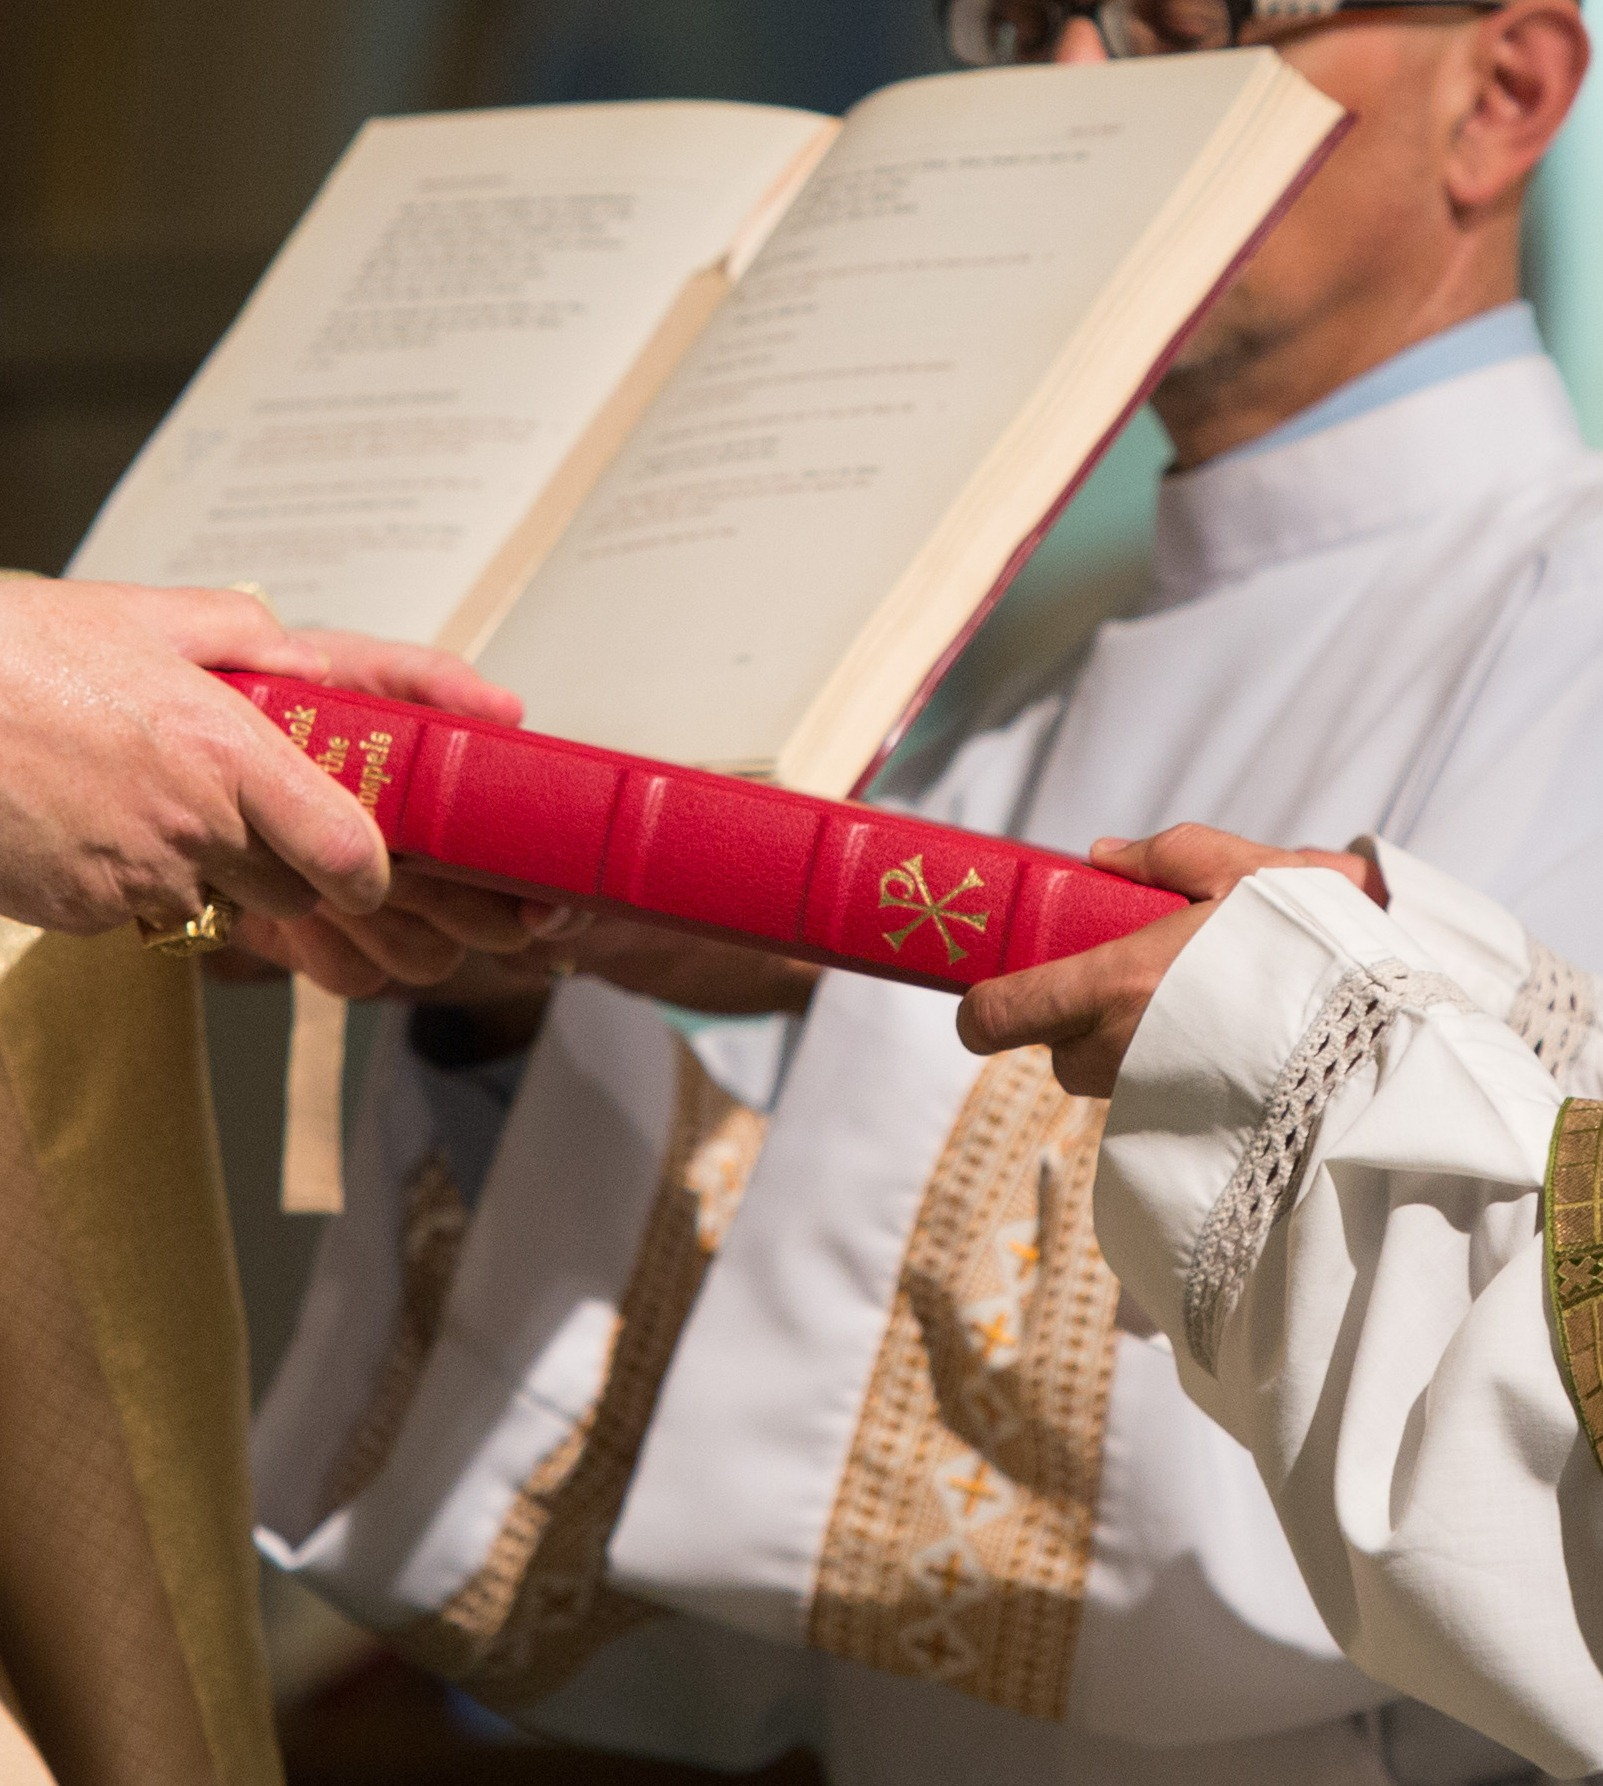 Picture shows newly ordained deacon receiving the Book of the Gospels